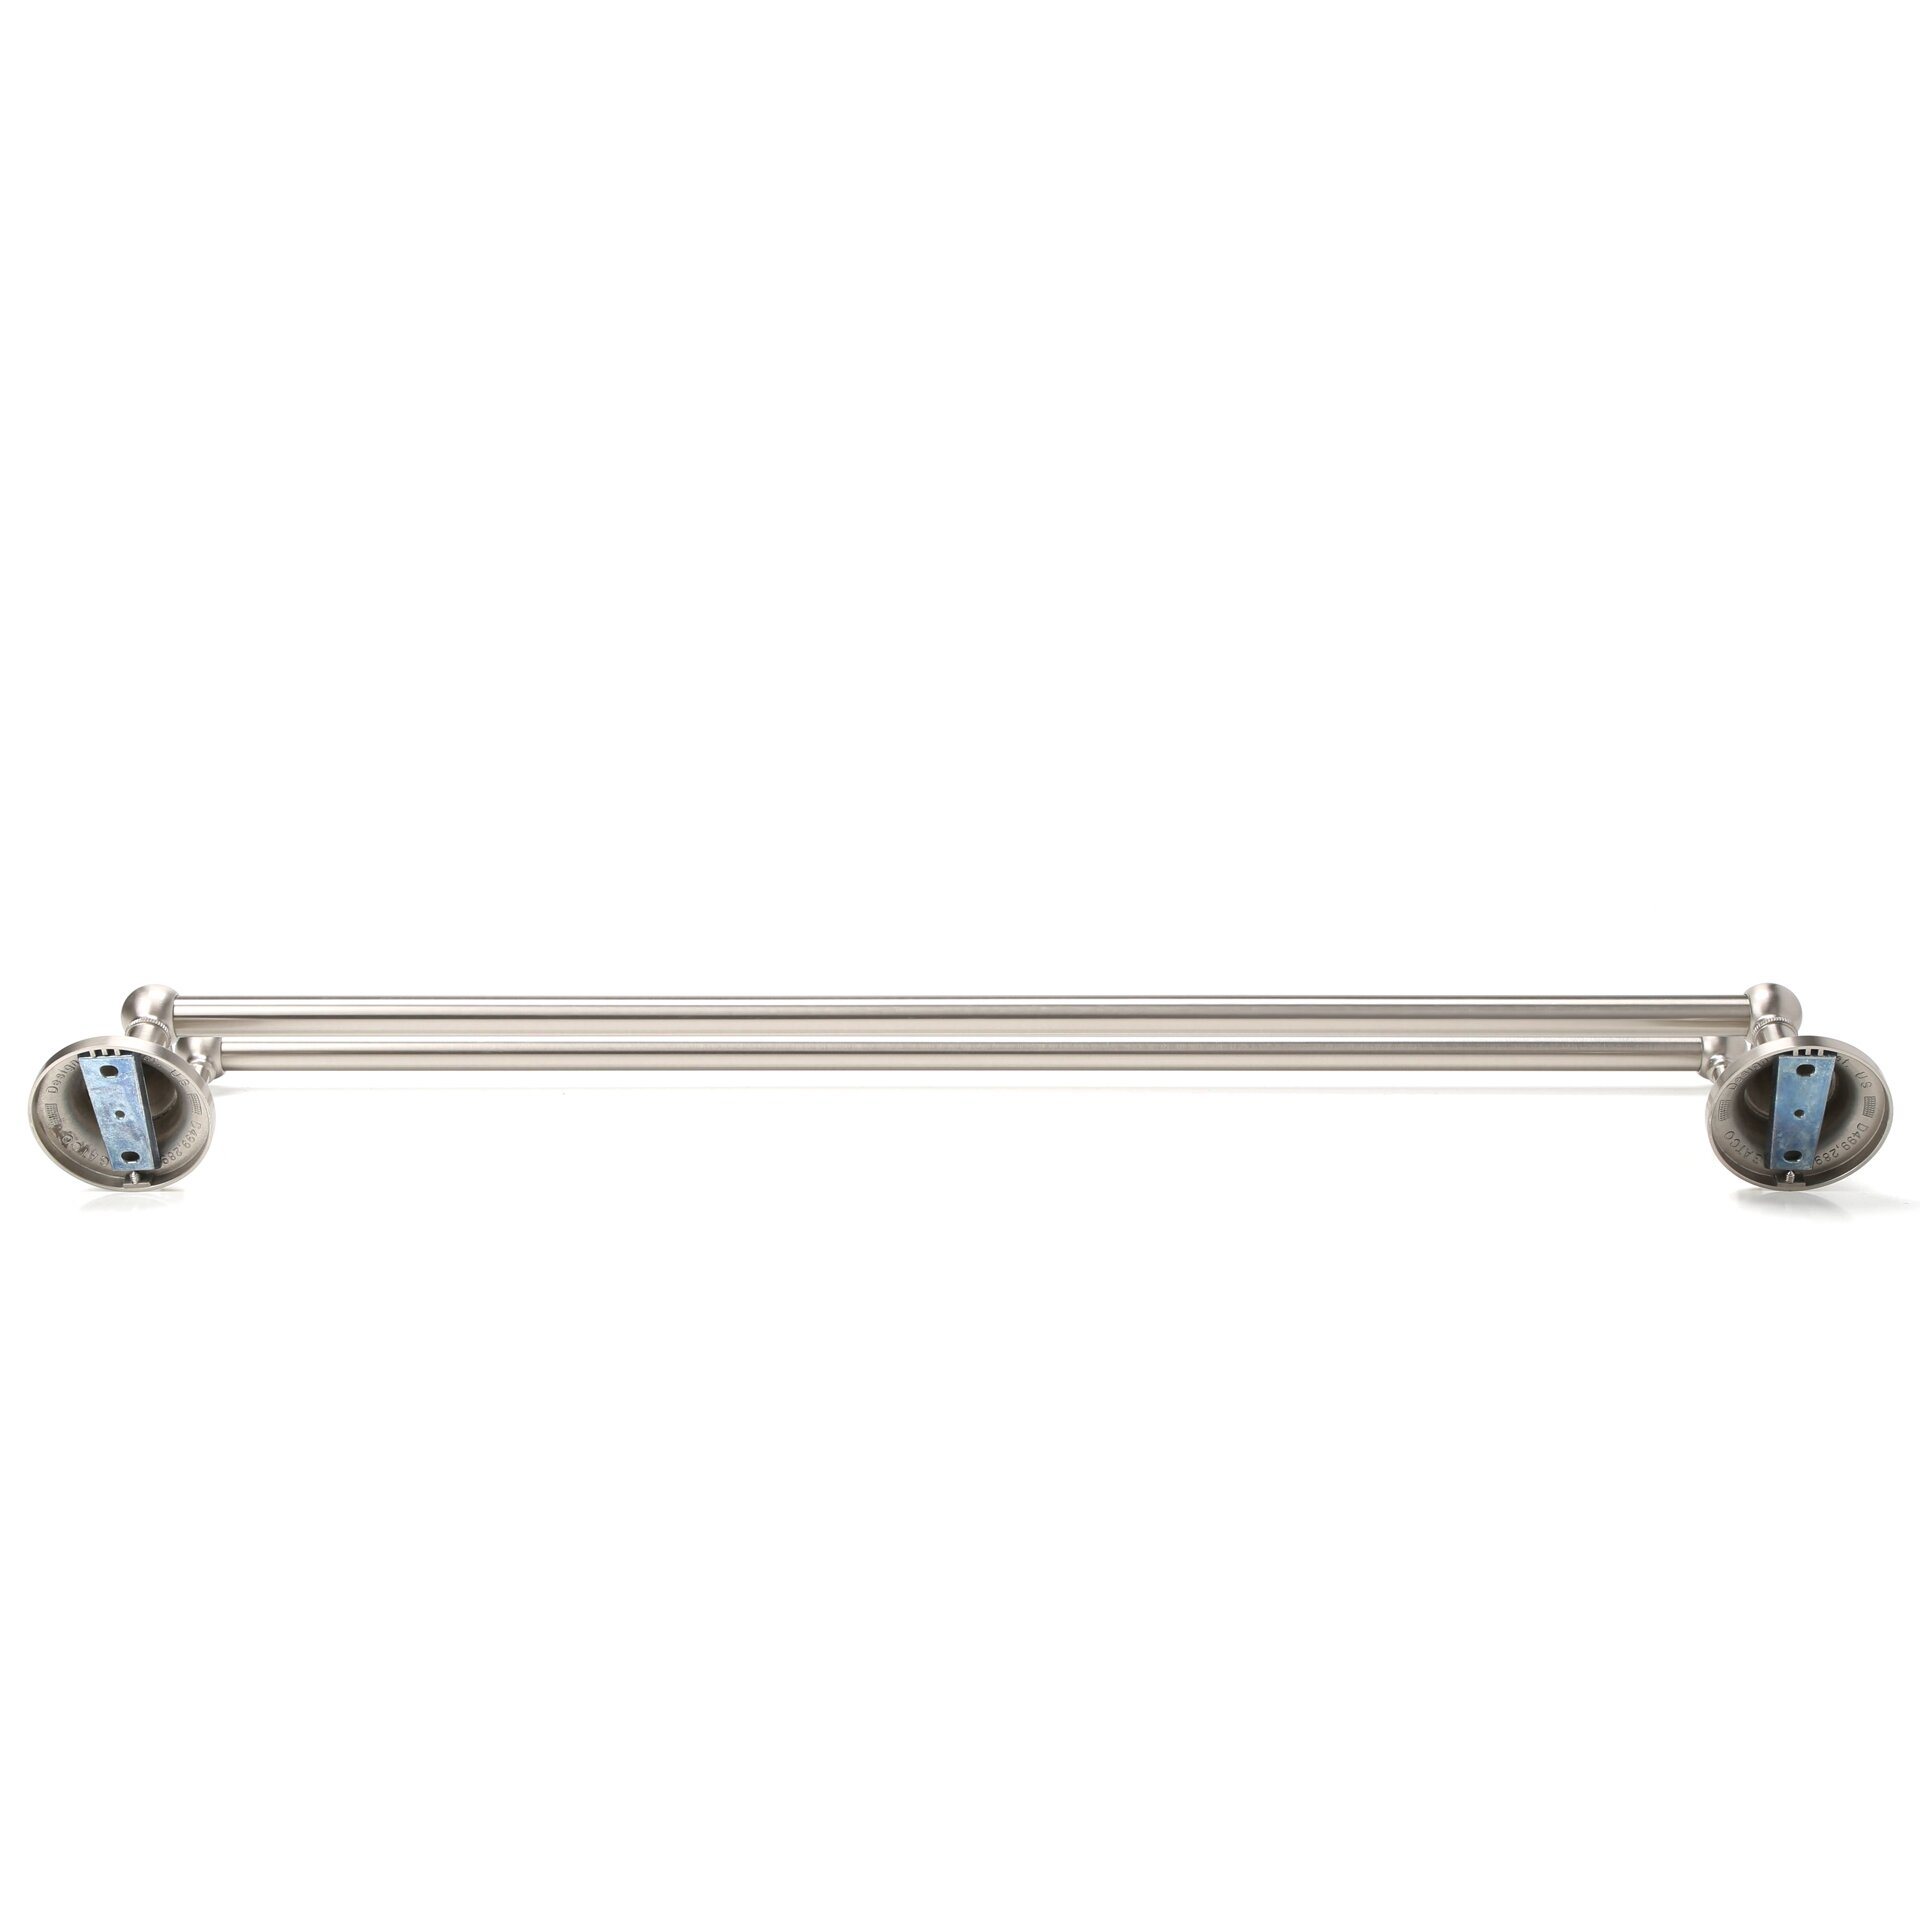 Bathroom Double Towel Bars for your Home